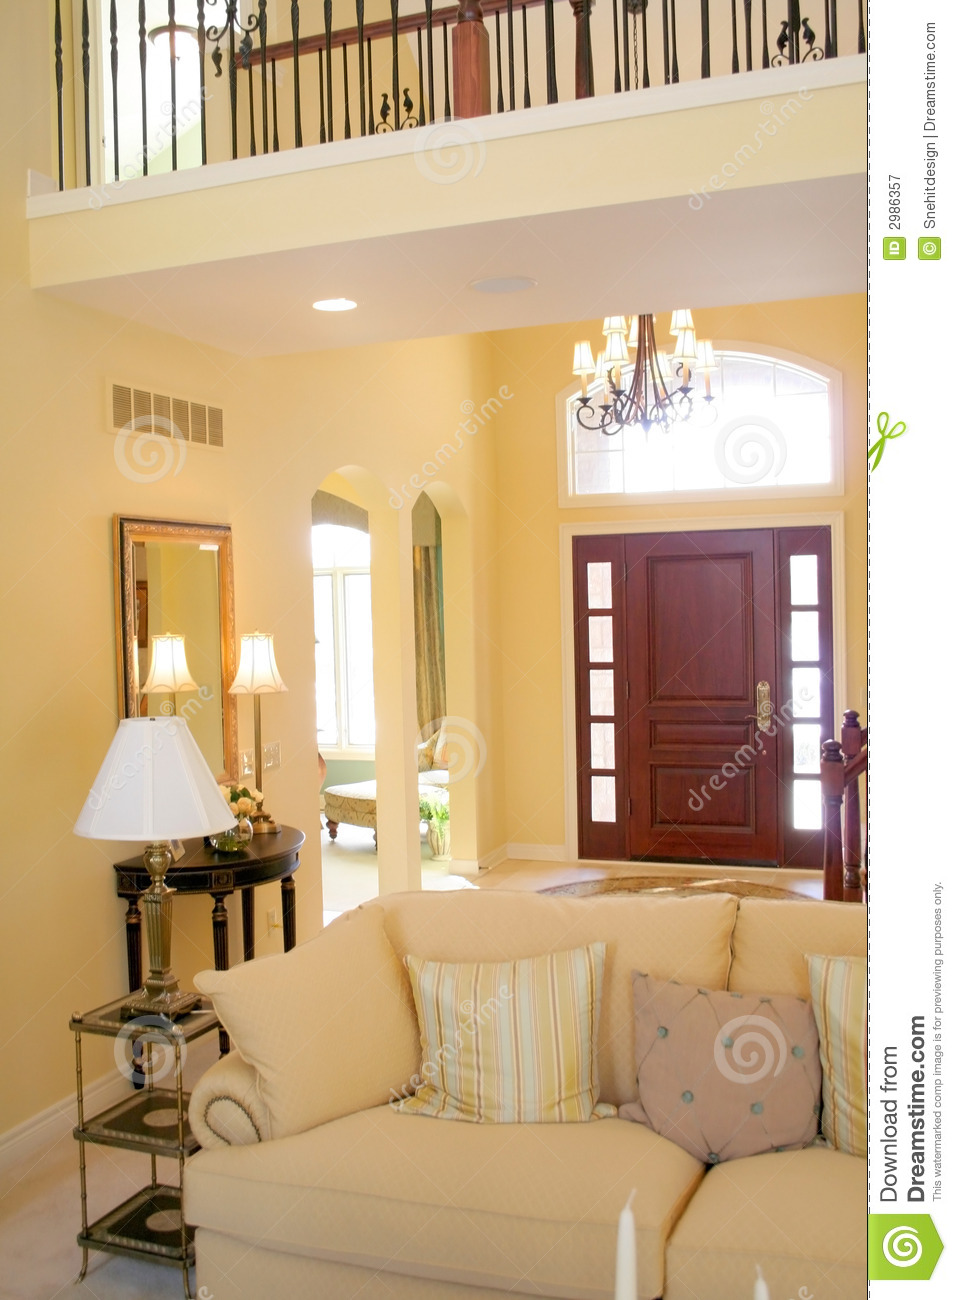 Beautiful Interiors stock image. Image of curtains, carpet ...